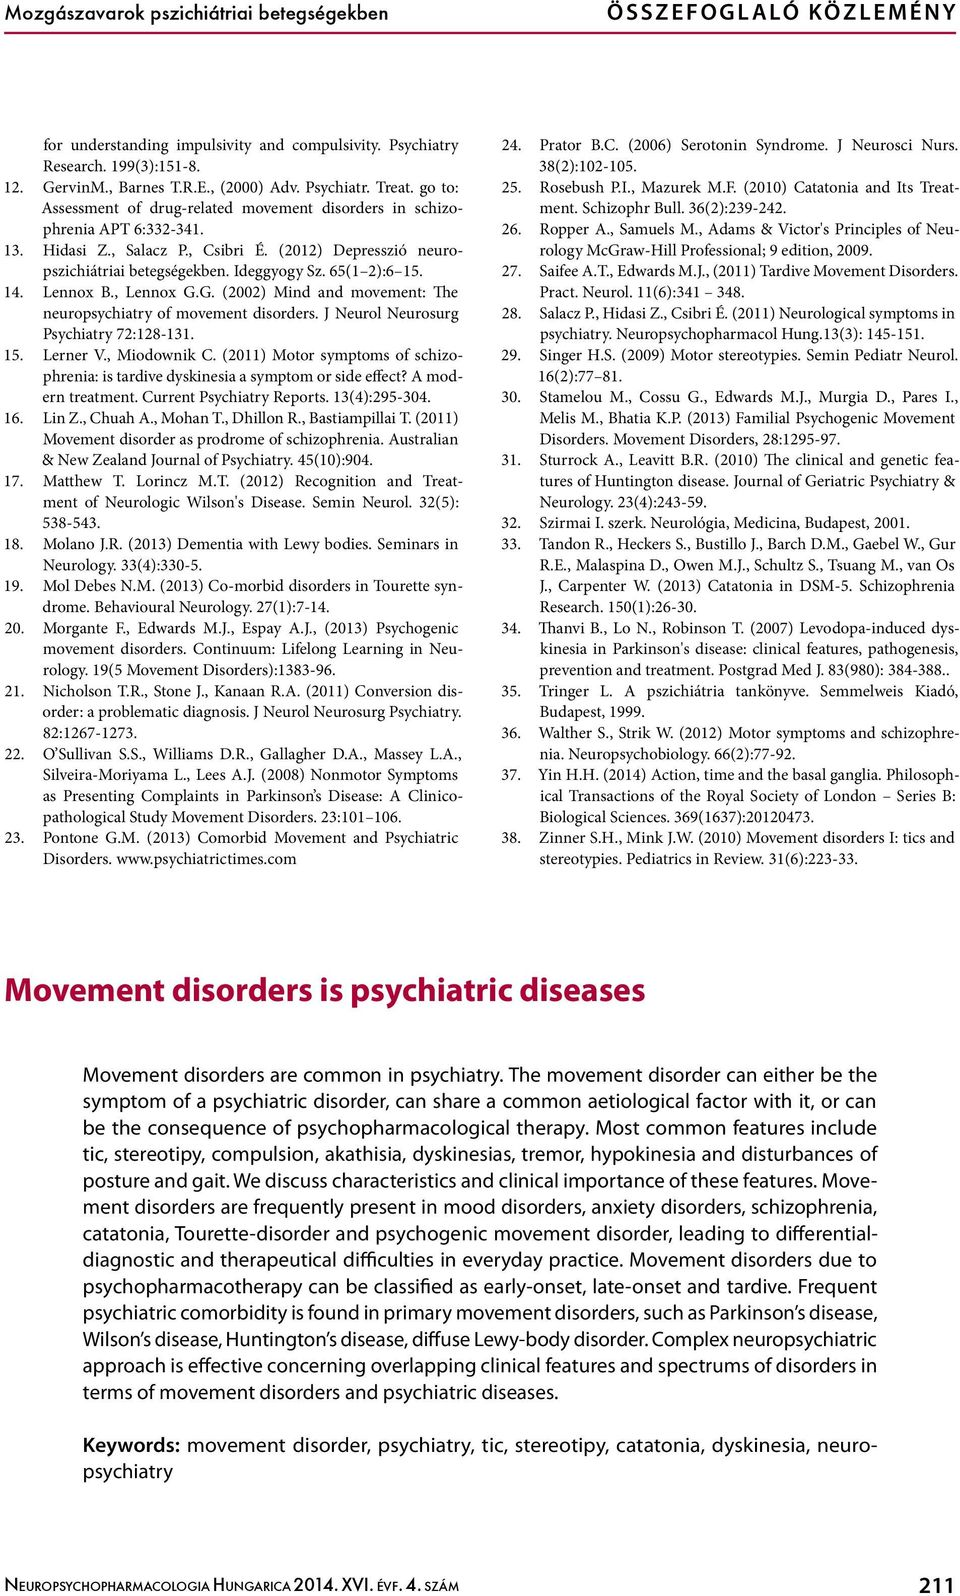 14. Lennox B., Lennox G.G. (2002) Mind and movement: The neuropsychiatry of movement disorders. J Neurol Neurosurg Psychiatry 72:128-131. 15. Lerner V., Miodownik C.